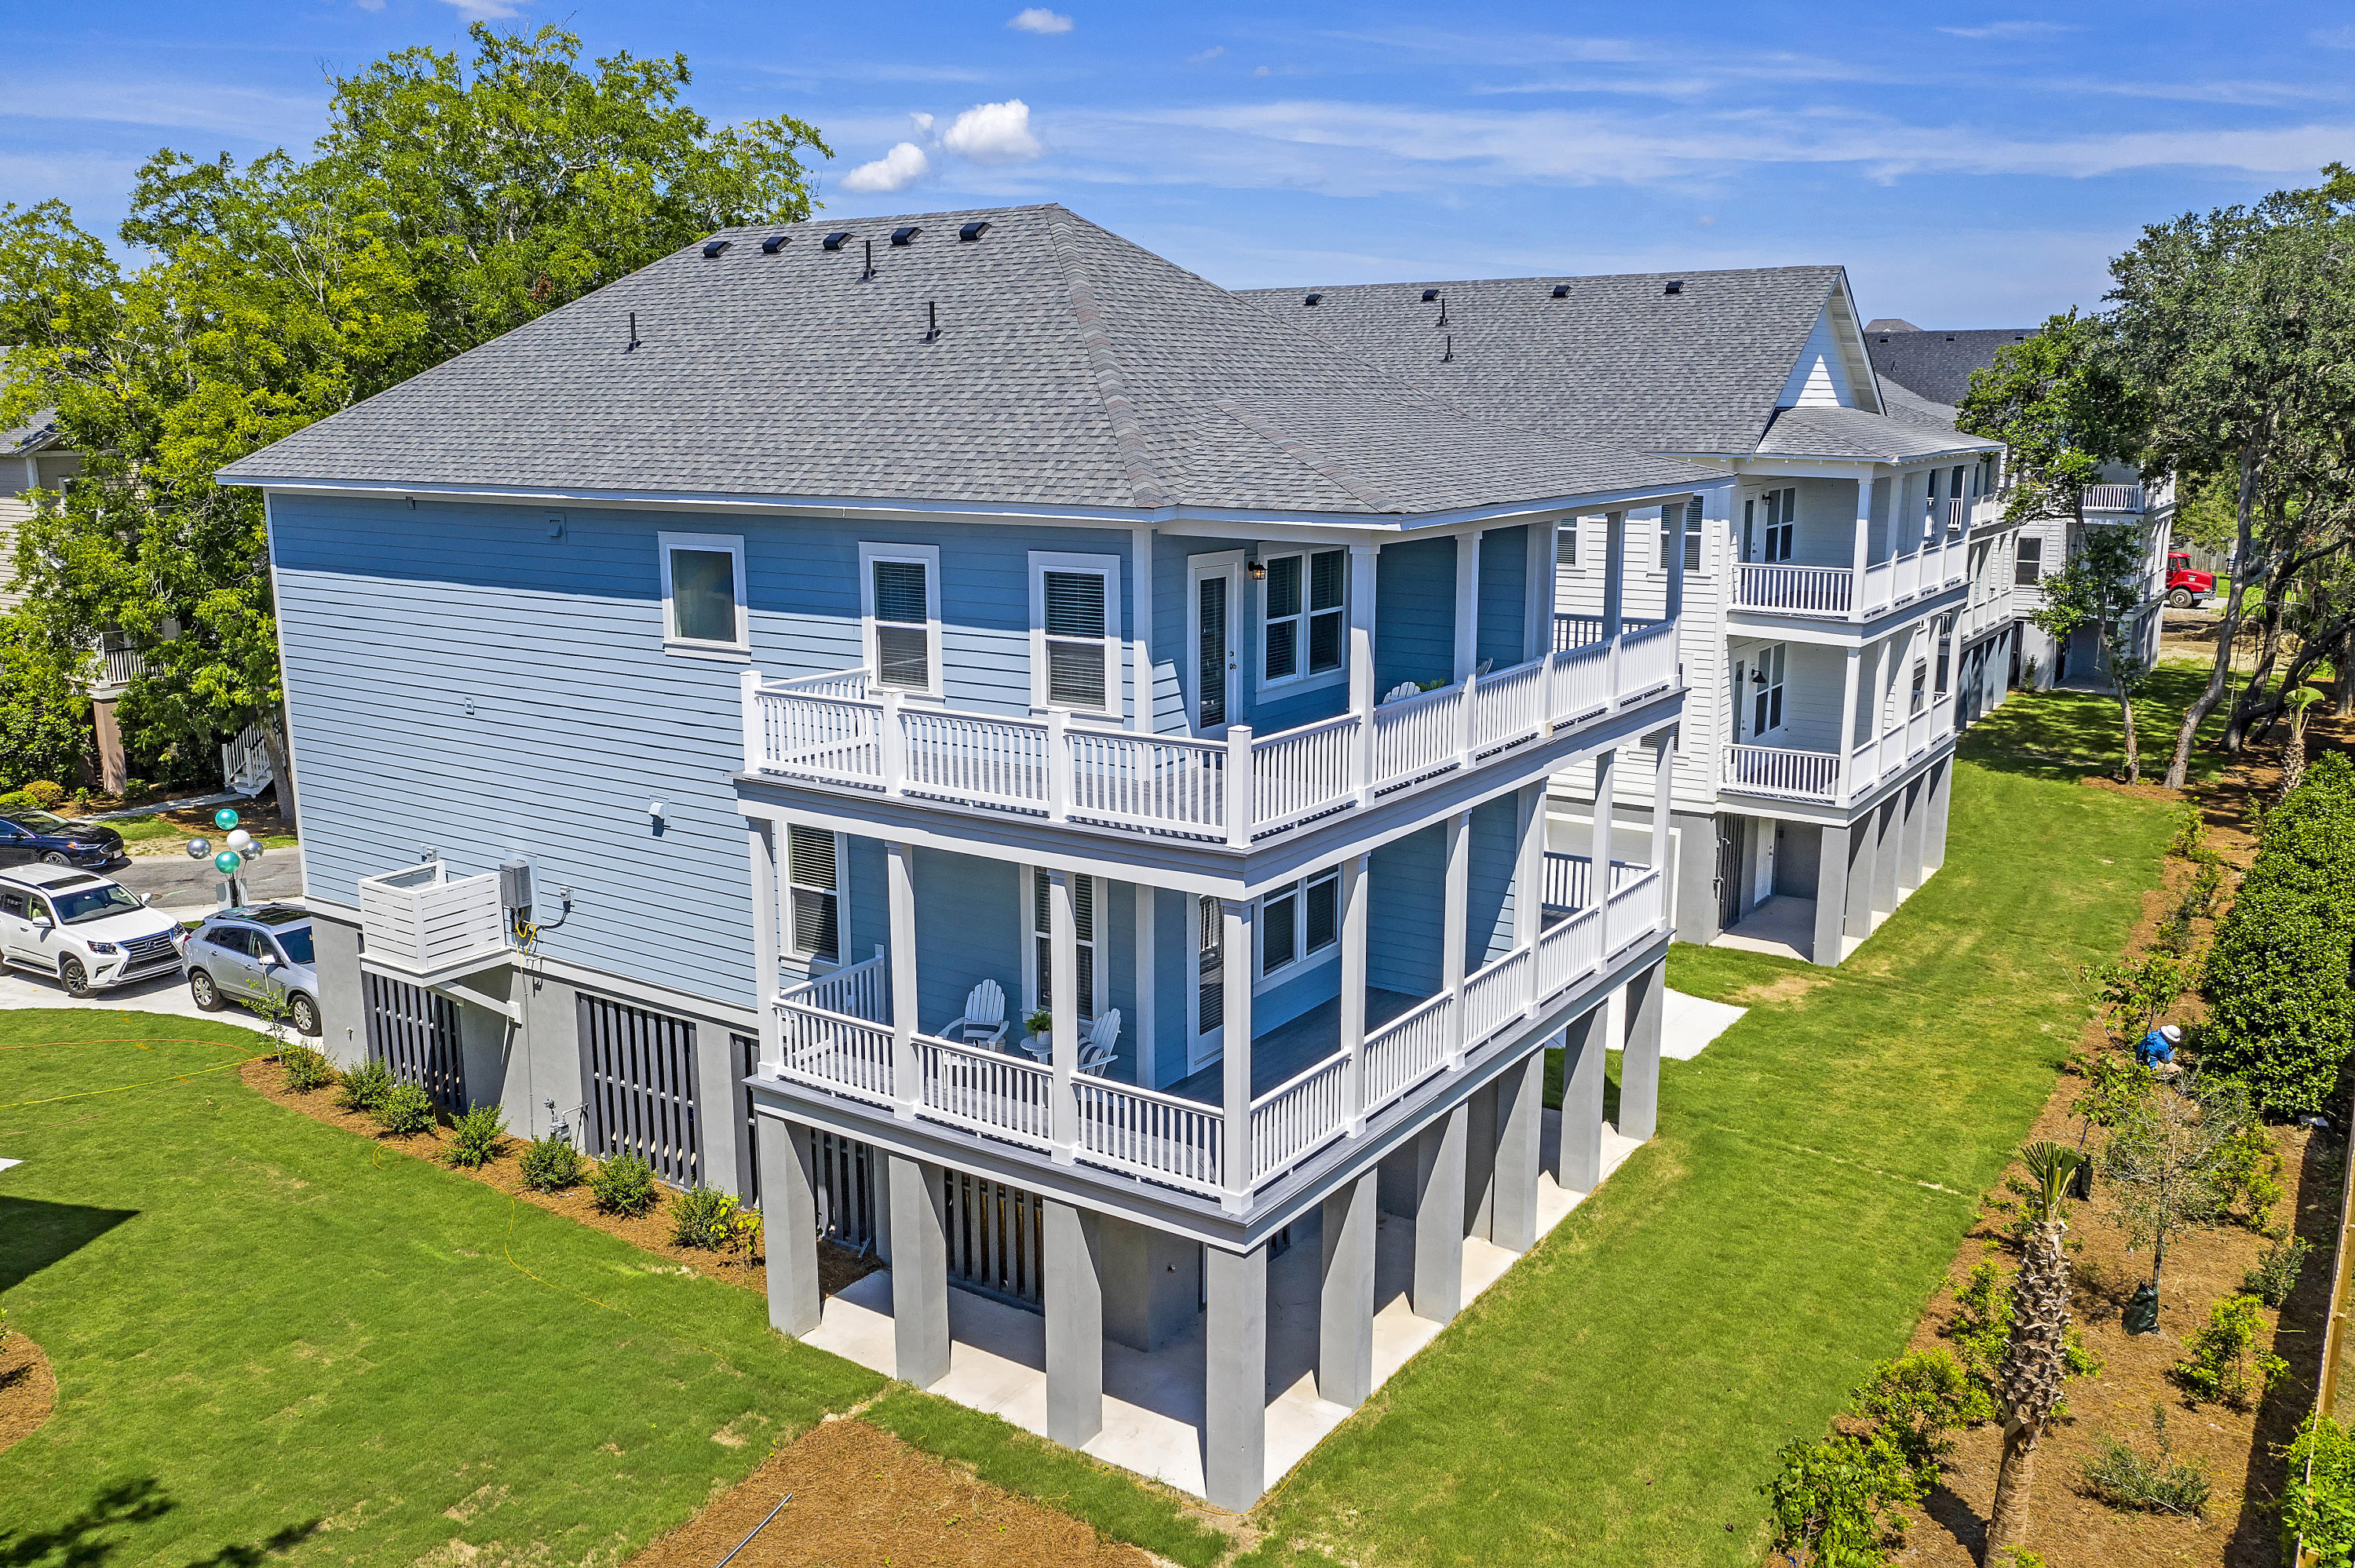 Sable On The Marsh Homes For Sale - 124 Howard Mary, Charleston, SC - 0